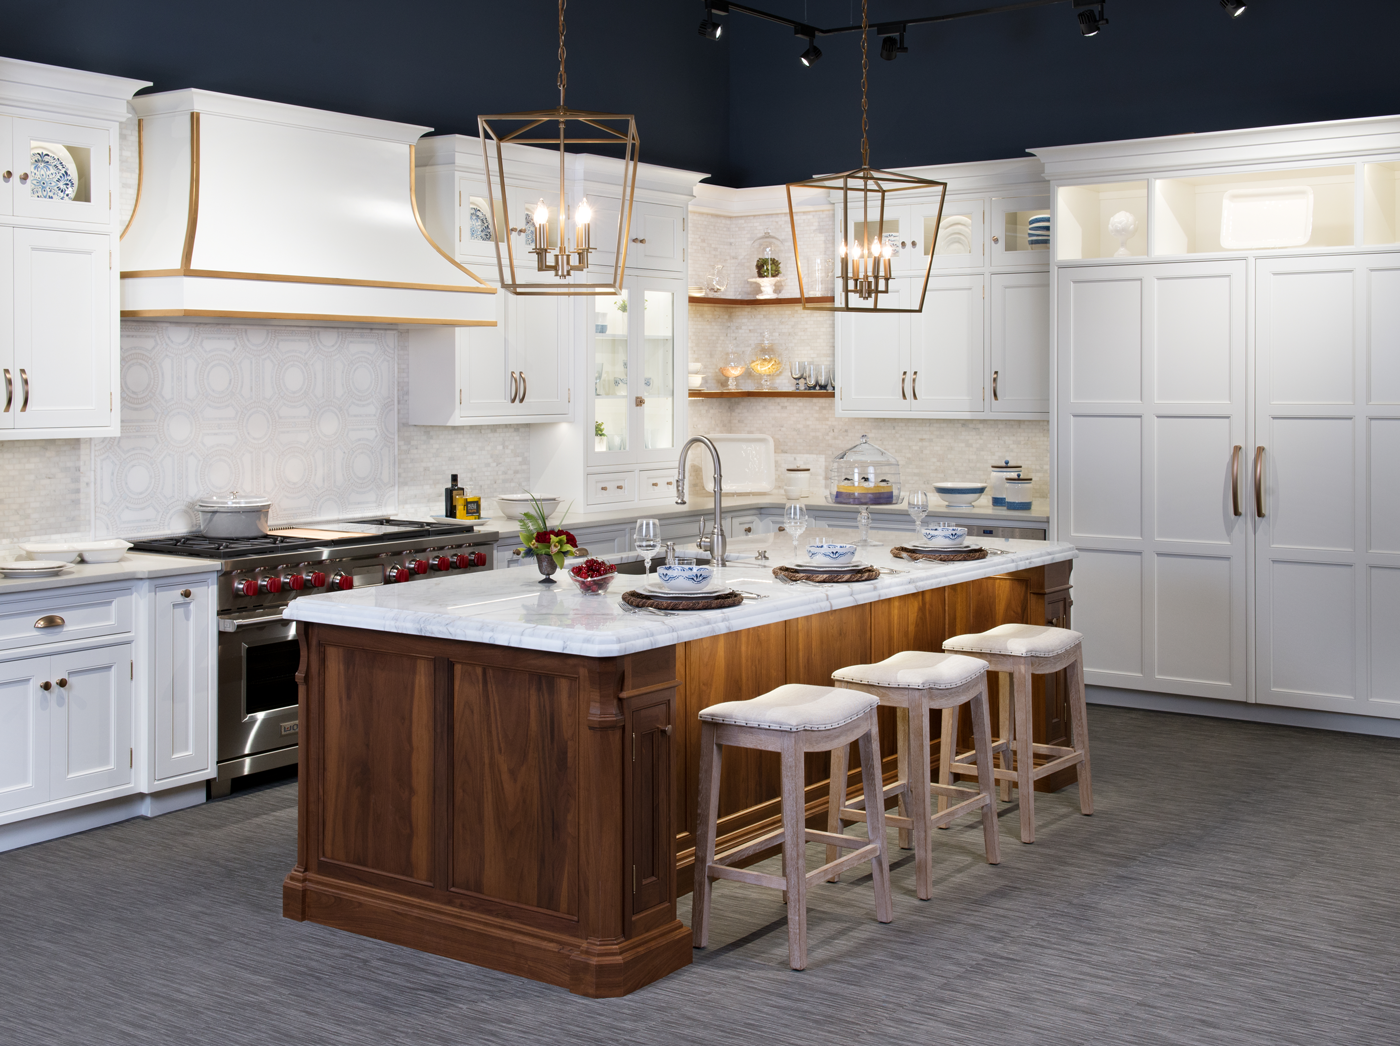 Clarke showroom kitchen with big island in the center set up for 3 diners